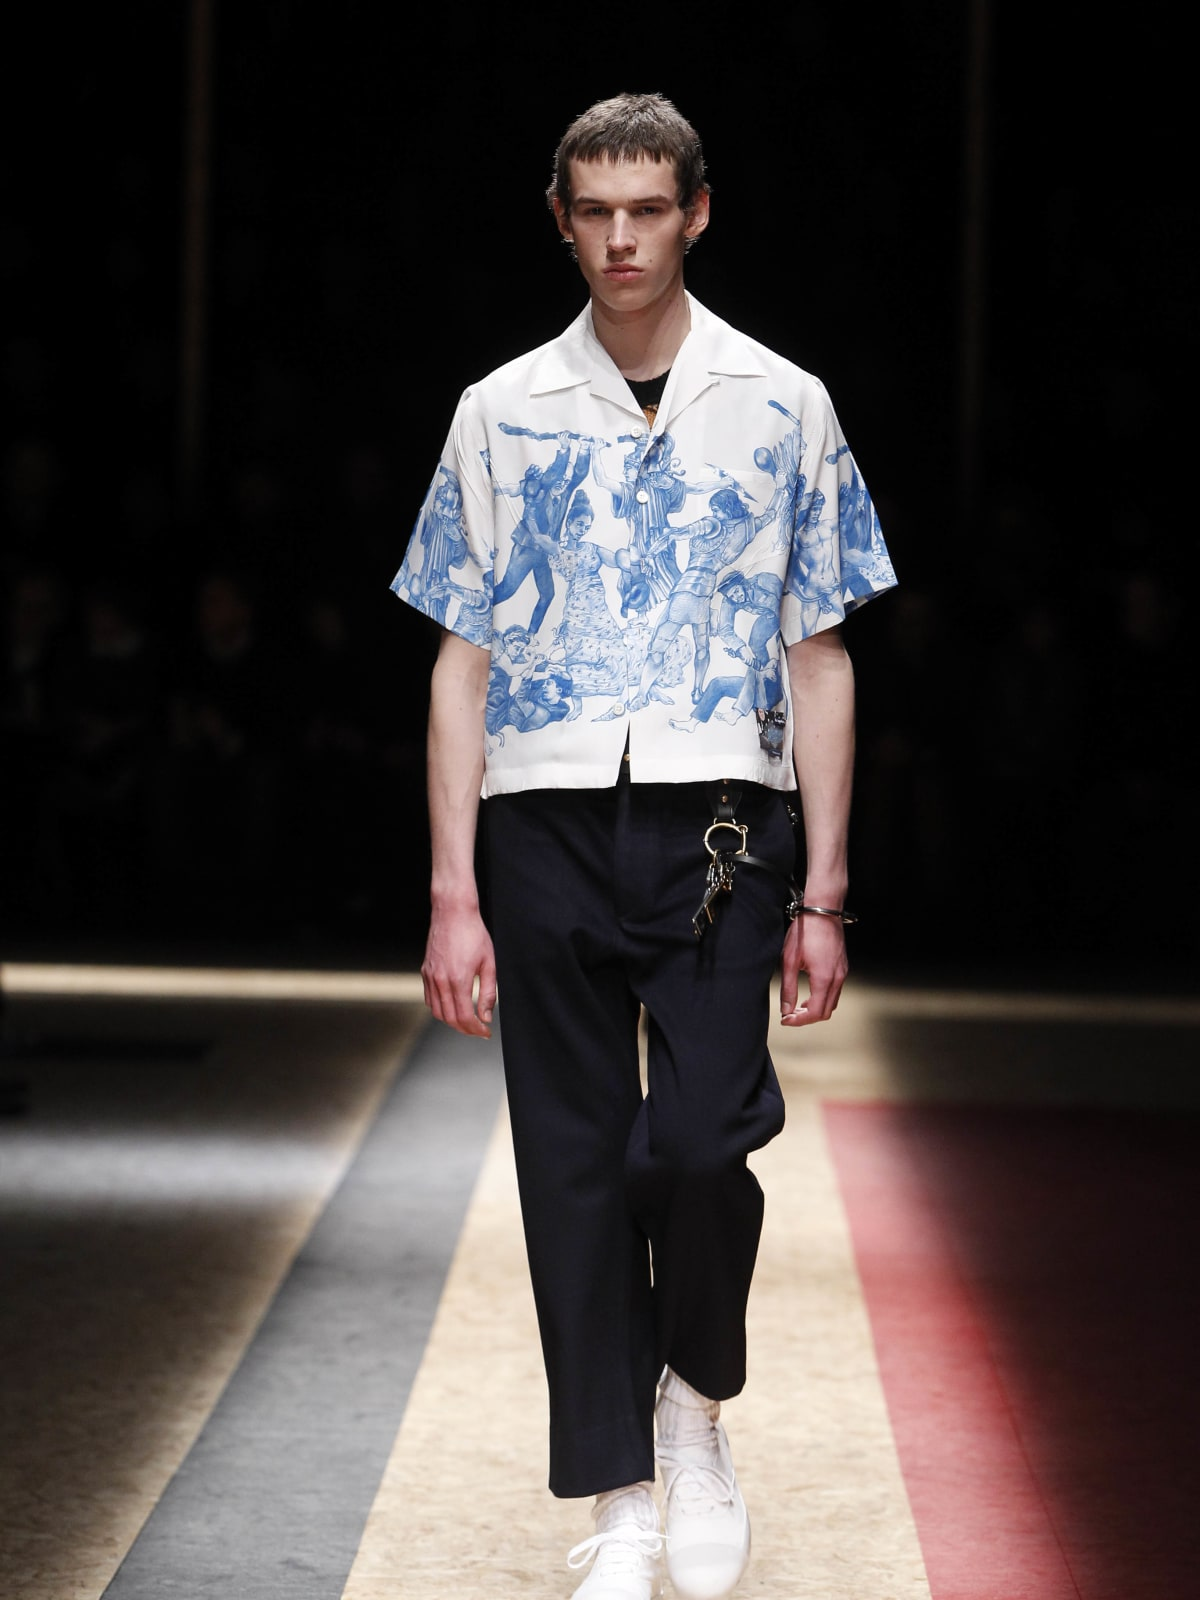 Prada menswear show in Milan January 2016